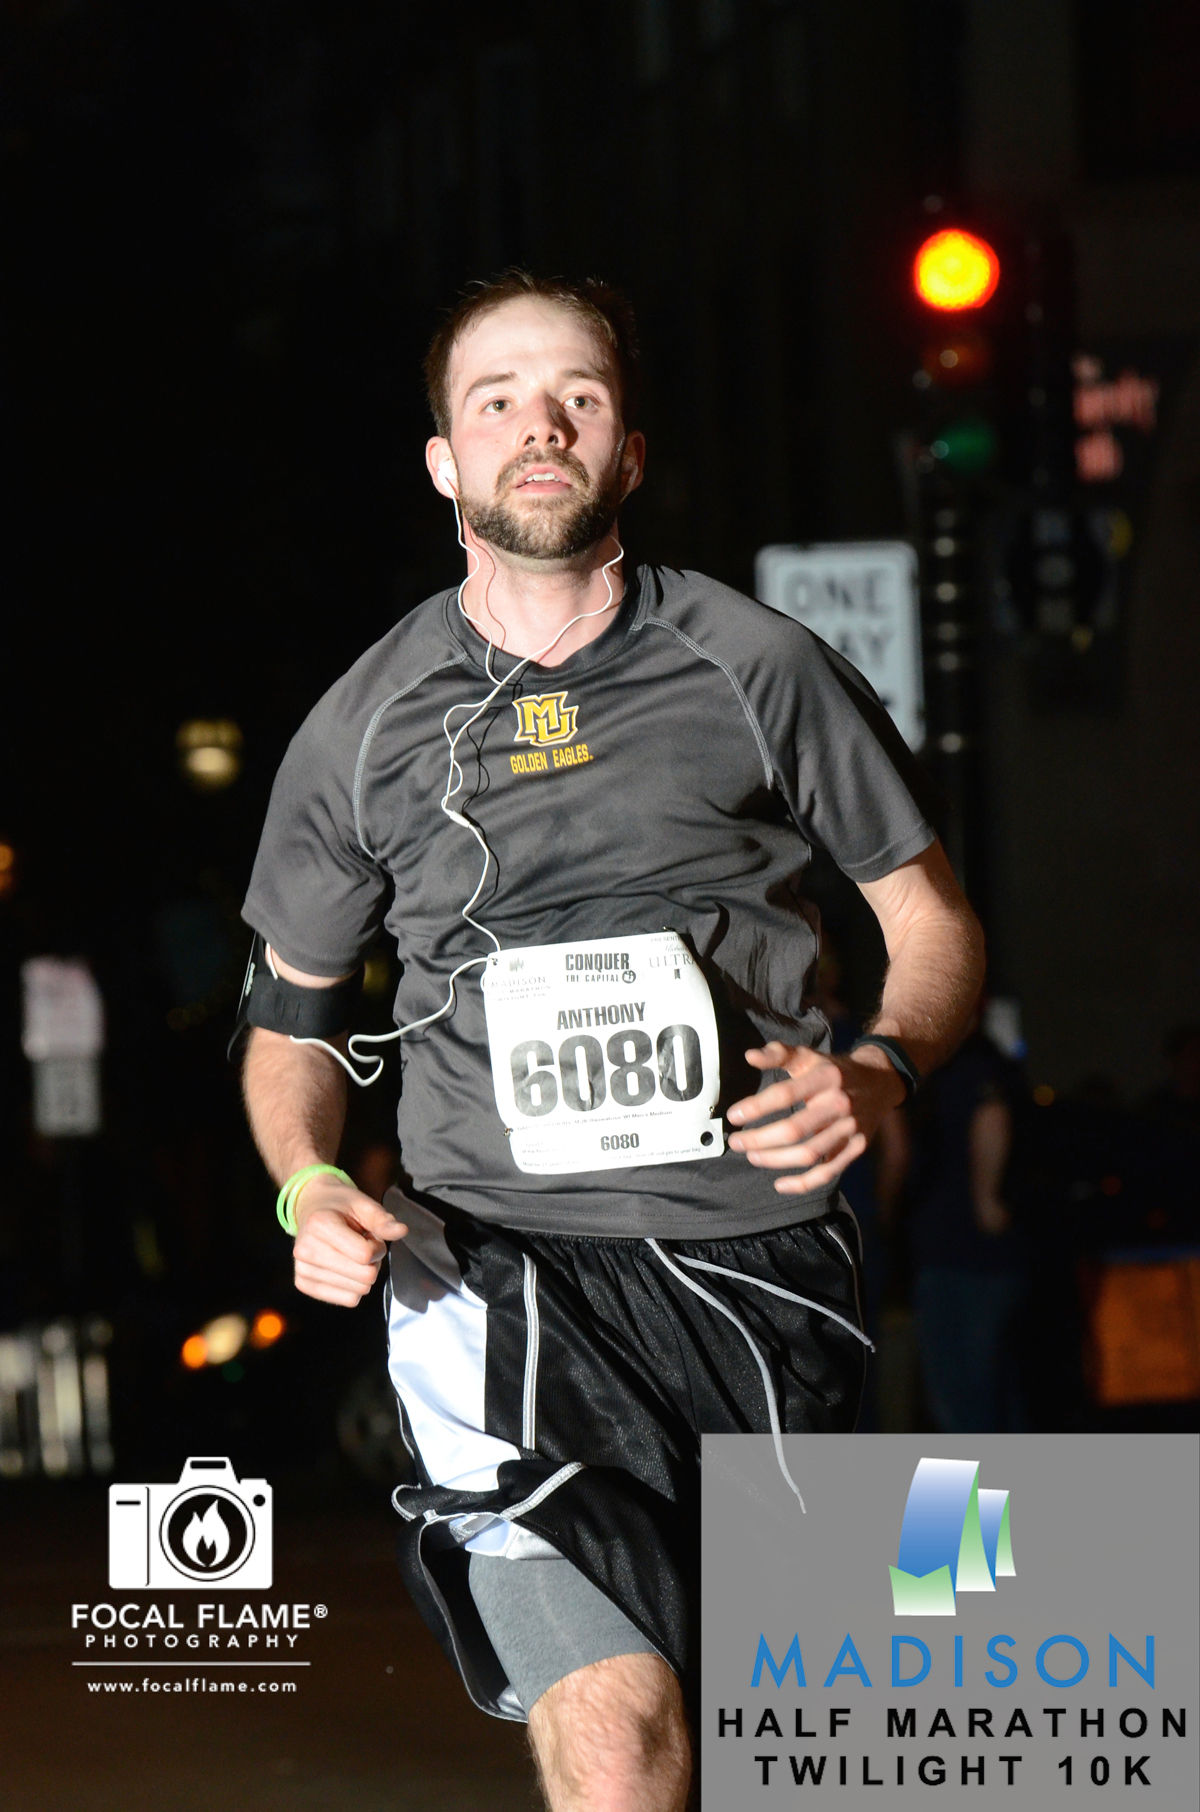 On May 24, Anthony Garcia ran the Madison Marathon Twilight 10K, racing through the downtown streets at nightfall. © 2014 Focal Flame Photography   Photo credit: Paul McMahon